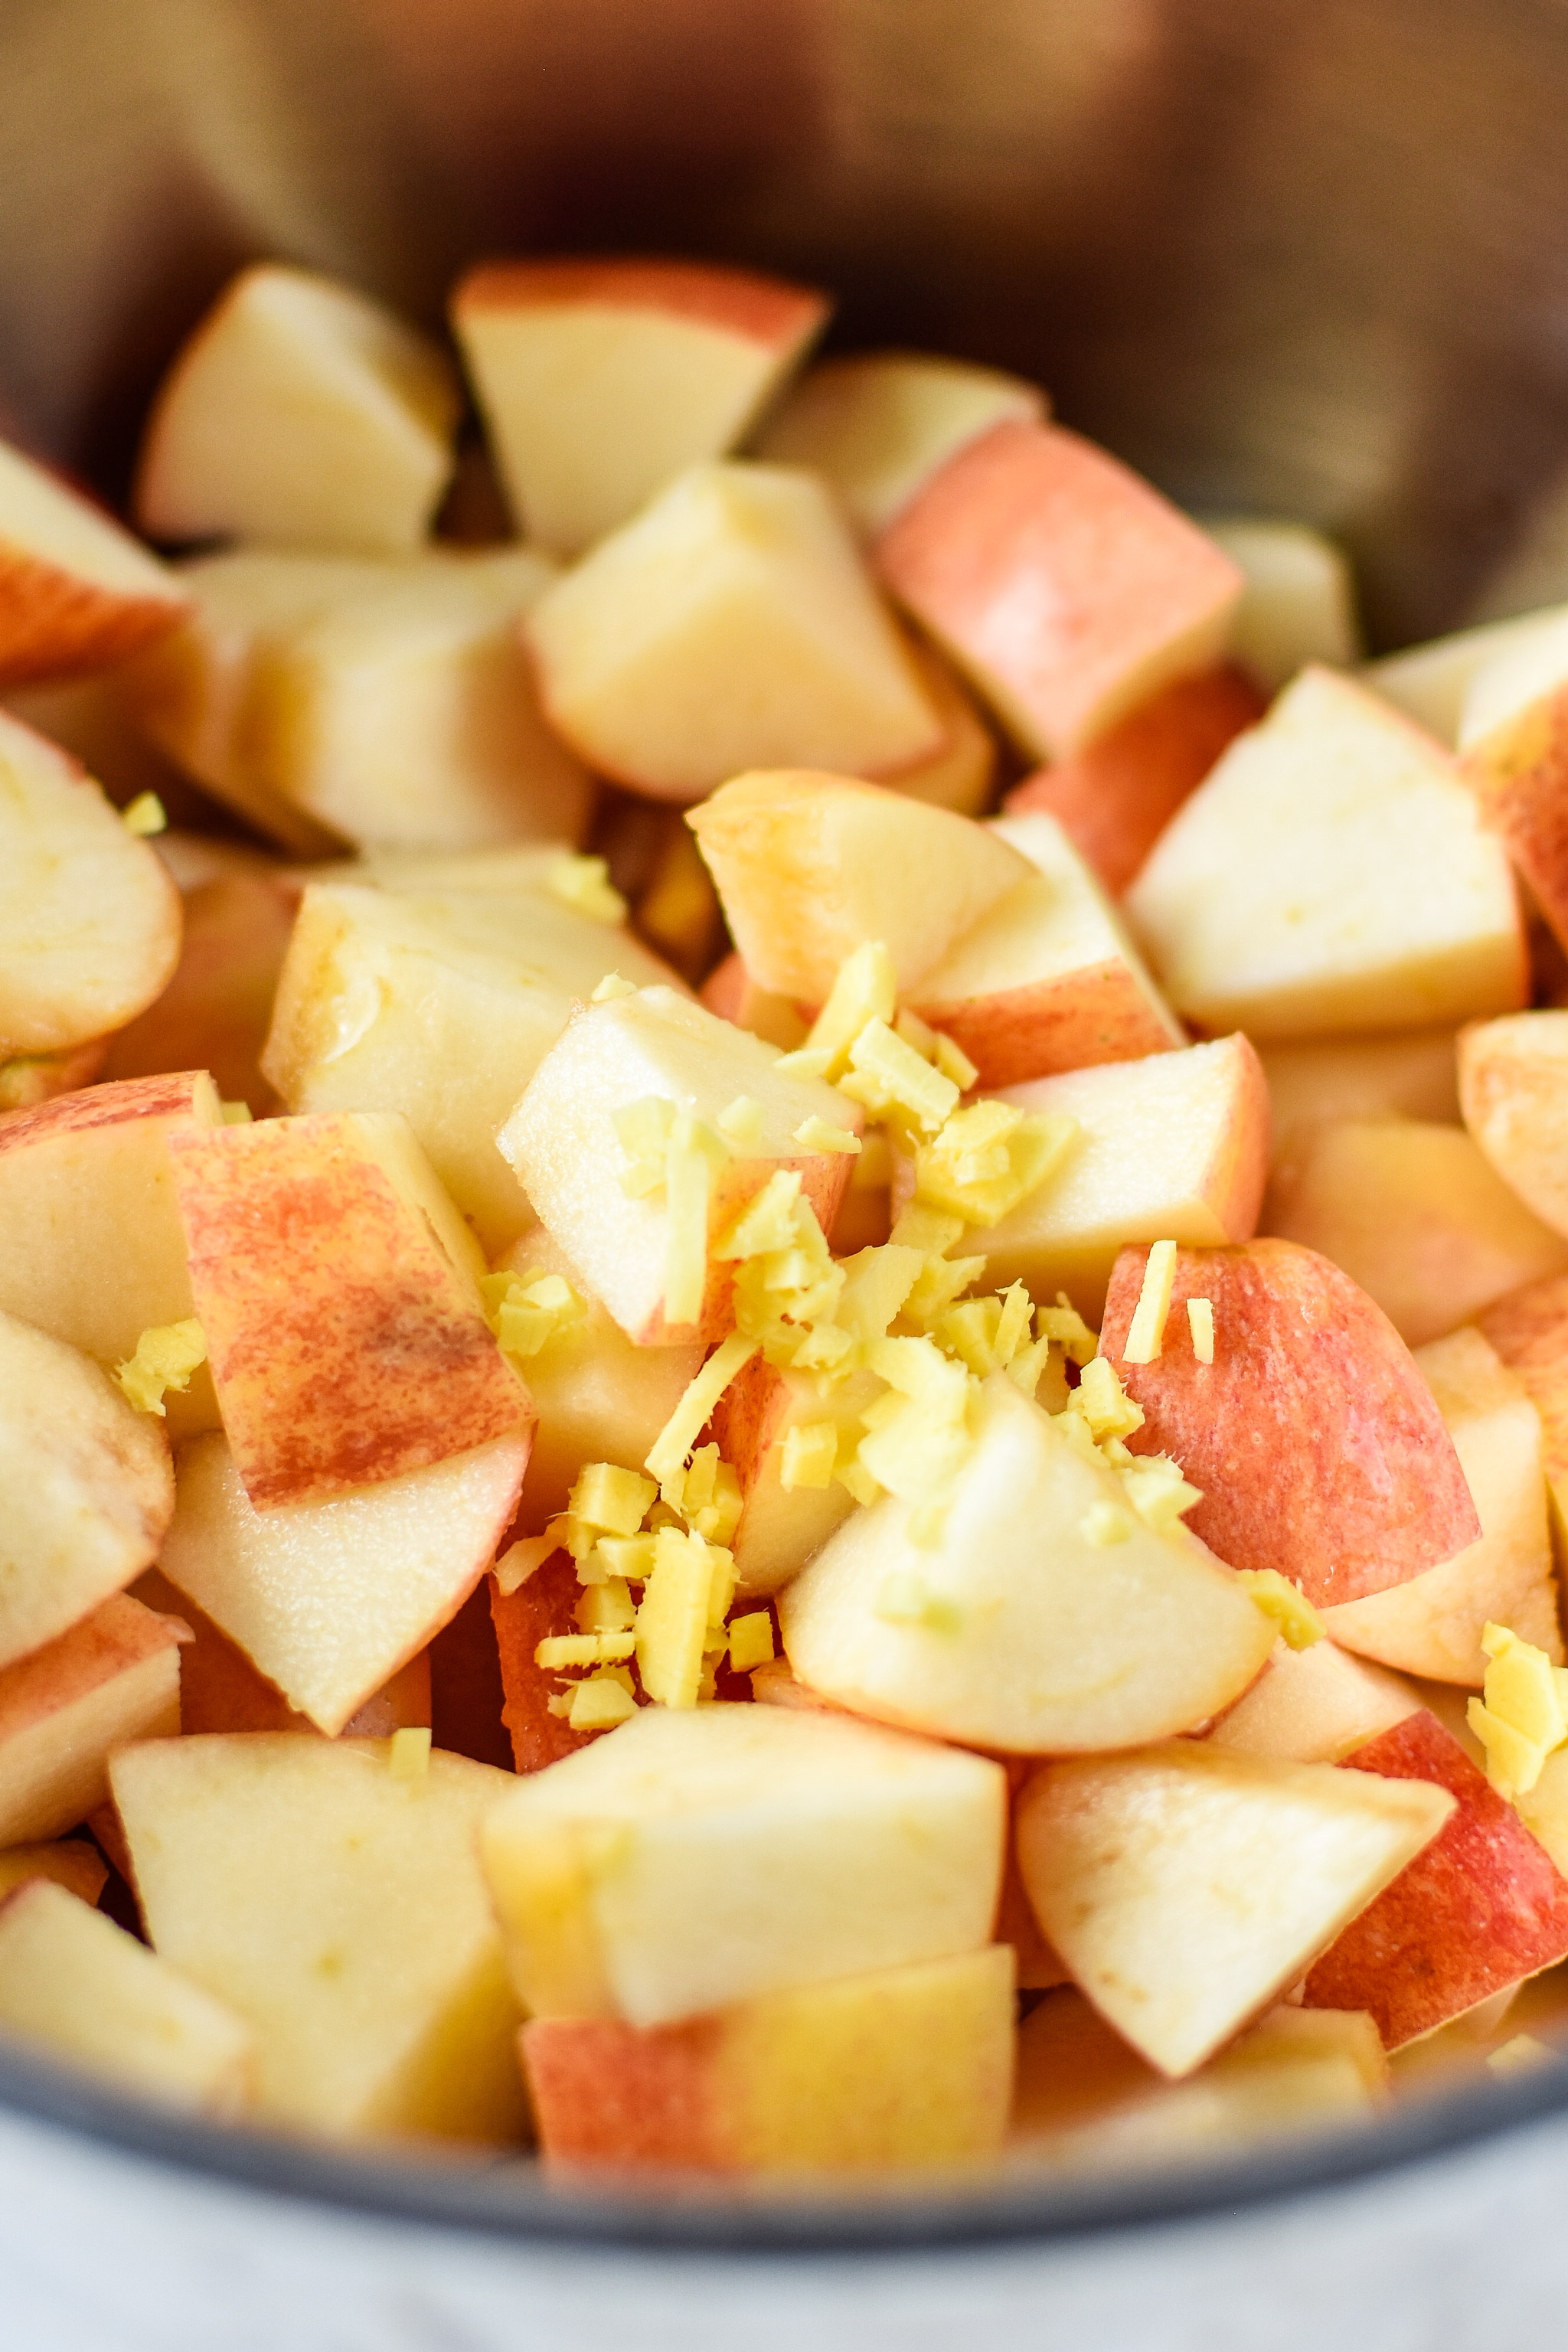 Apples and ginger for the ginger pear cinnamon applesauce